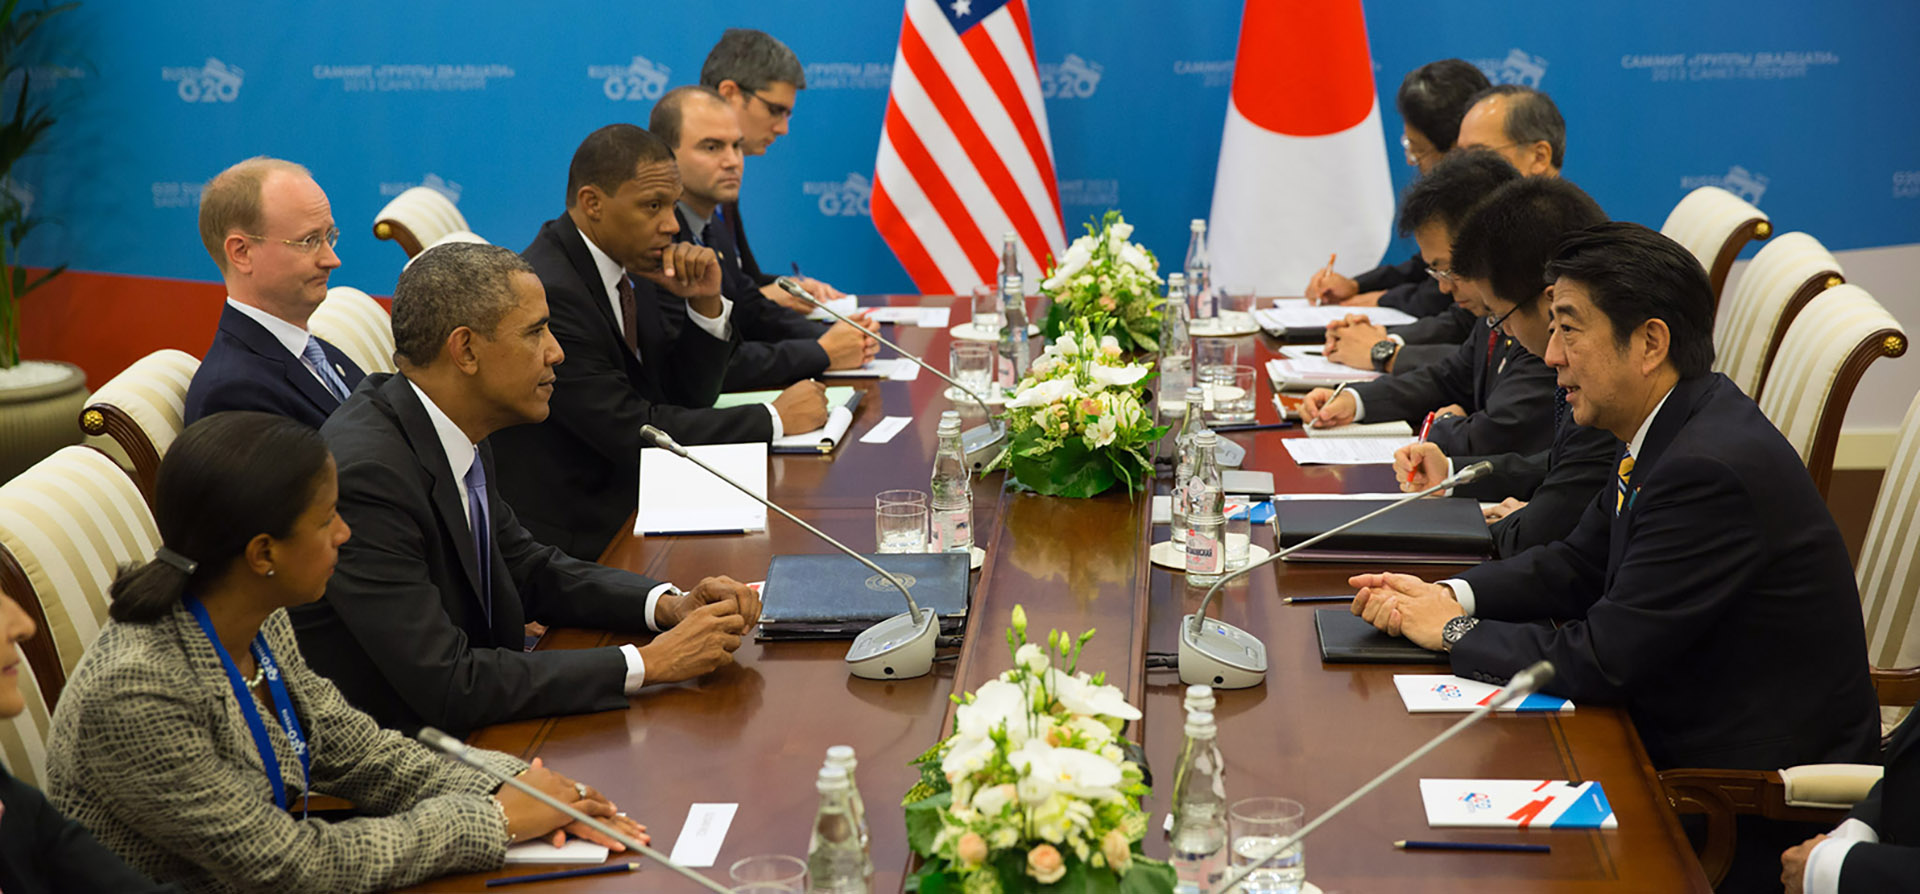 President Obama at a bilateral meeting with Prime Minister Abe of Japan in 2013. On his right is former US National Security Advisor, Susan Rice.